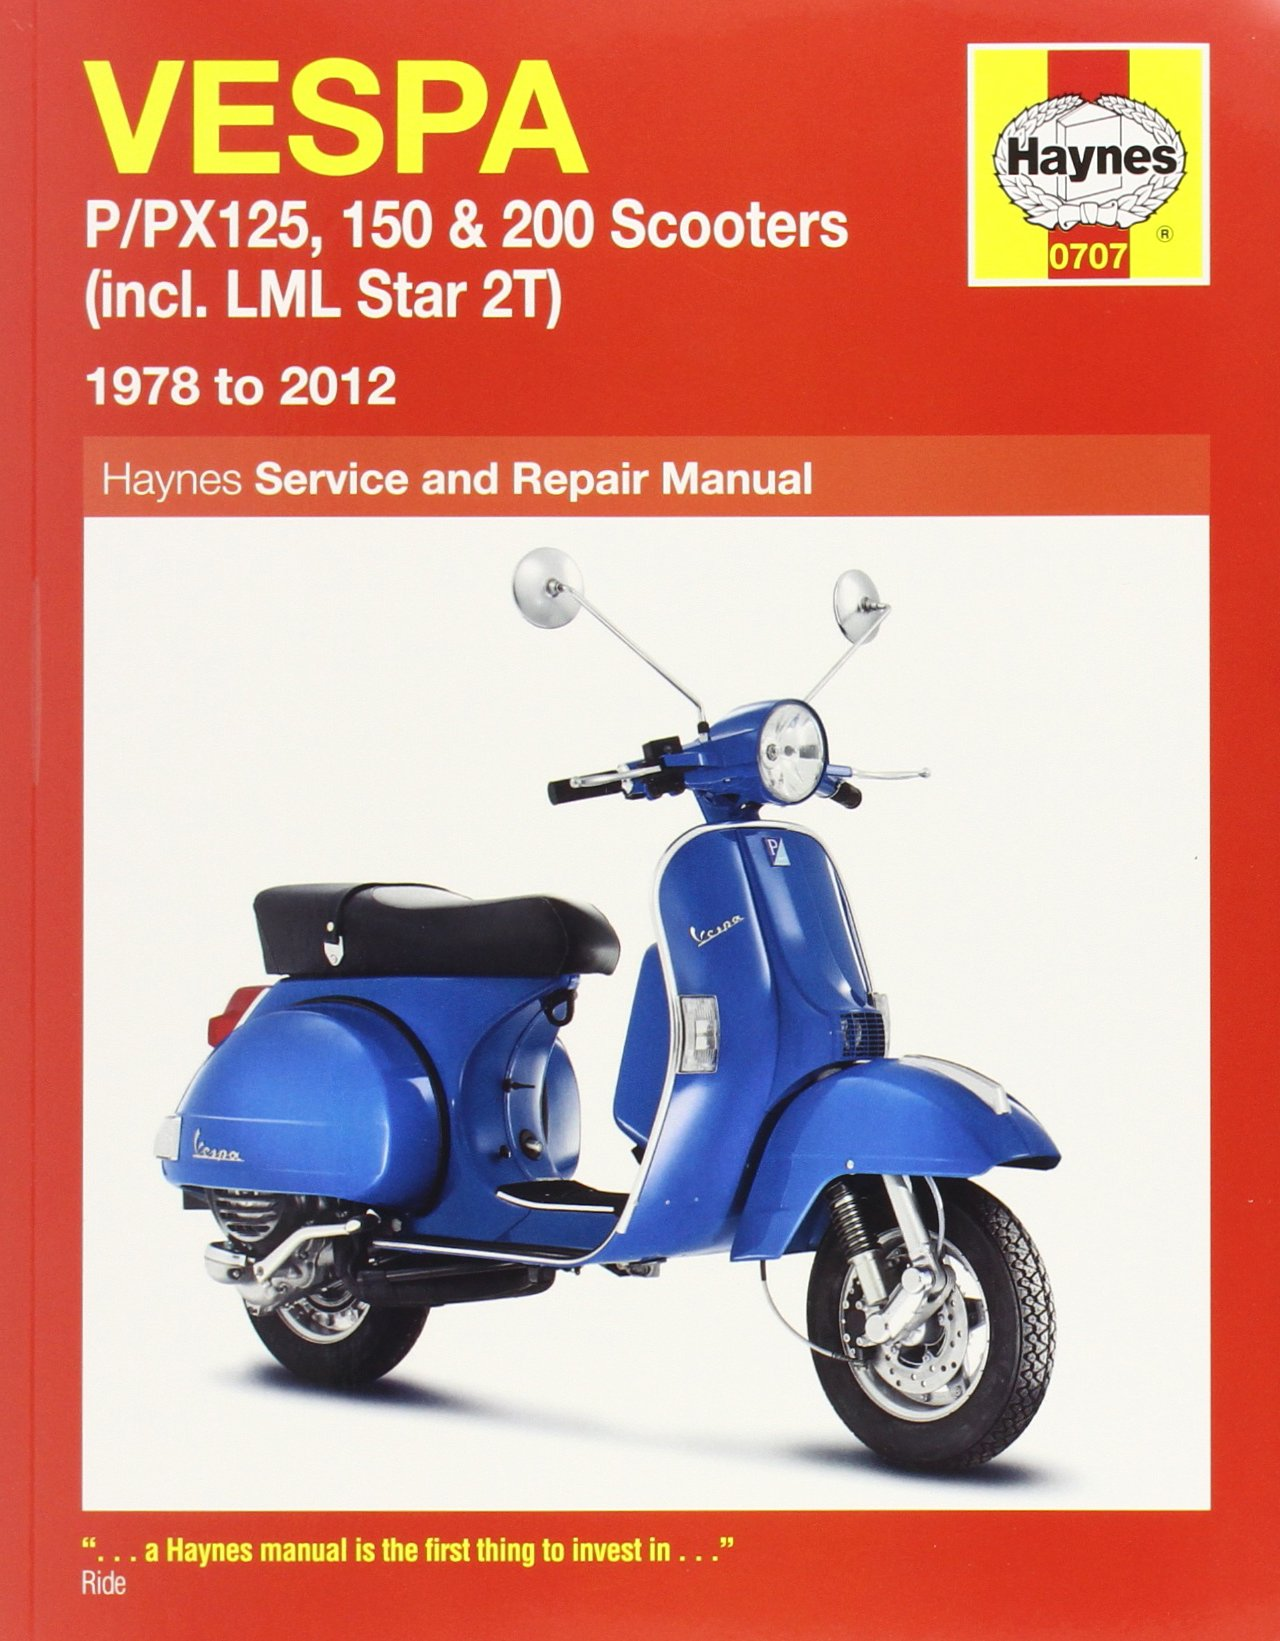 vespa p px125 150 200 scooters inc lml star 2t service repair vespa p px125 150 200 scooters inc lml star 2t service repair manual 1978 2012 haynes service and repair manuals amazon co uk pete shoemark